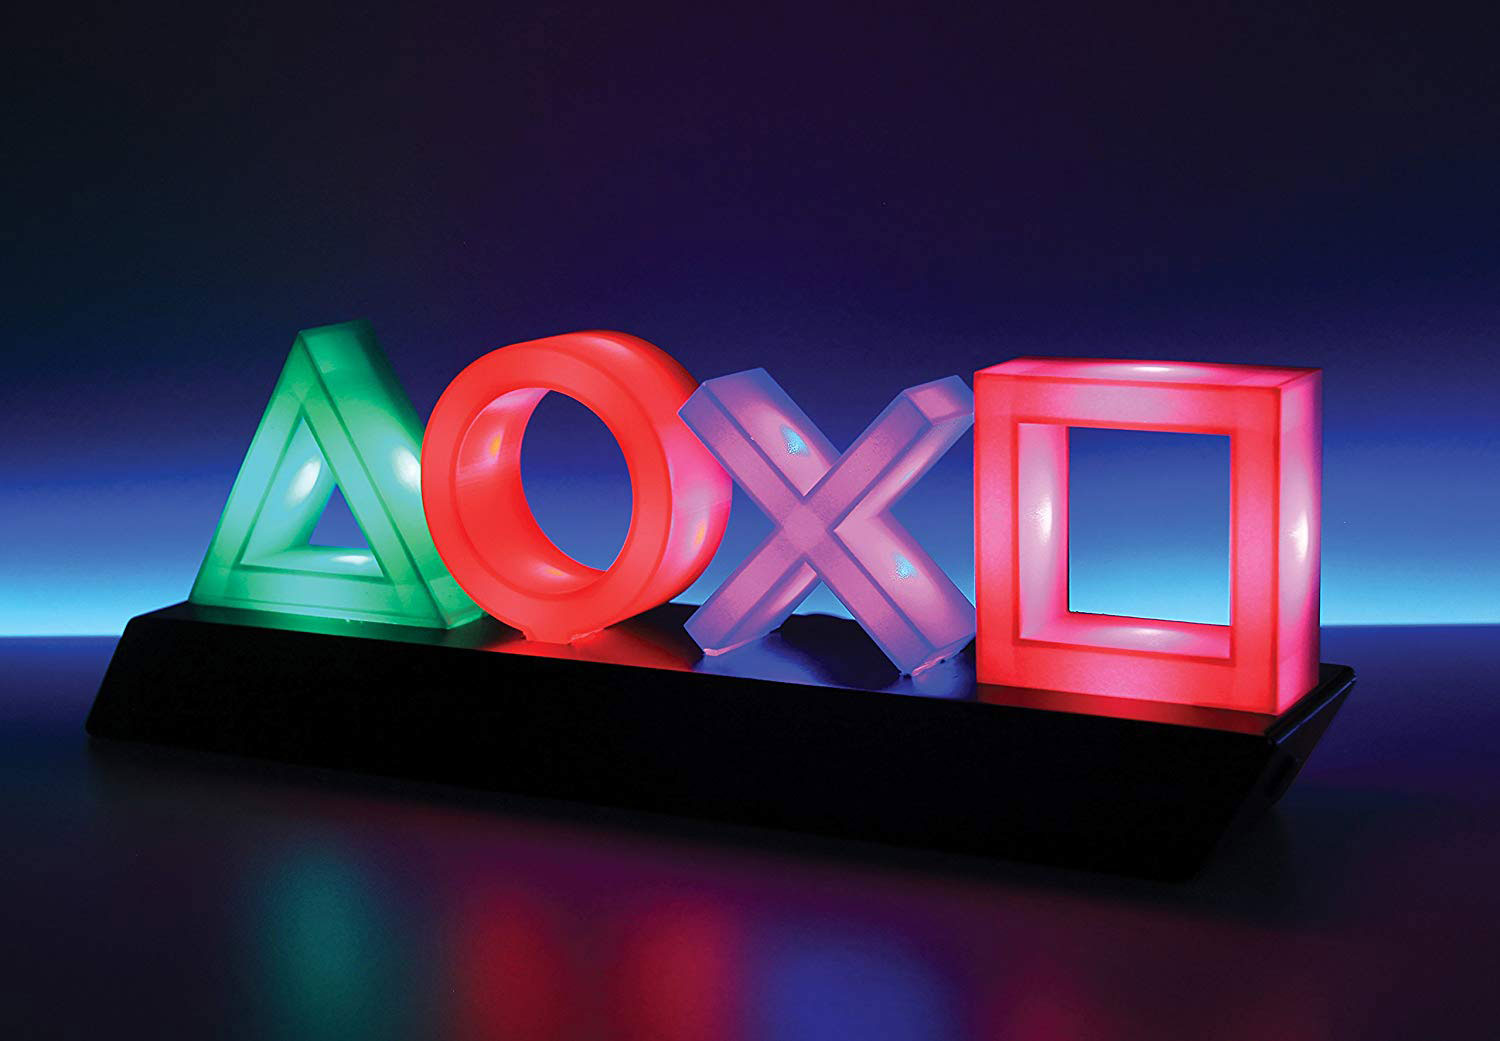 PlayStation-Lampe